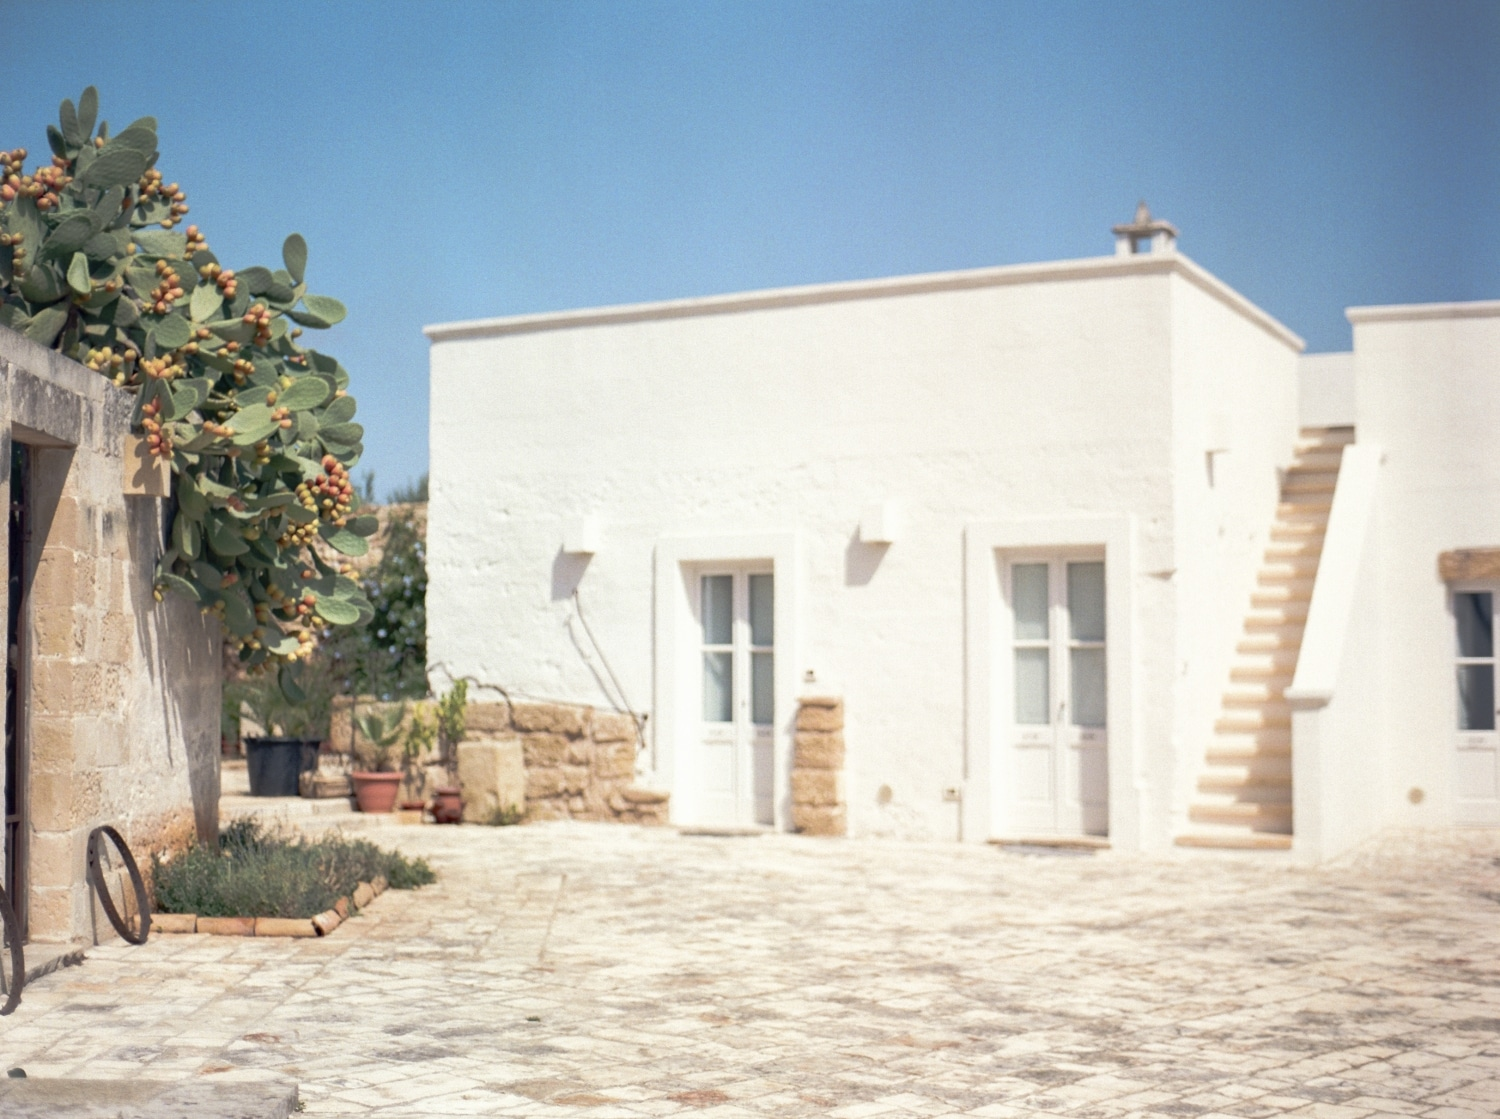 church where the Apulia italy wedding took place